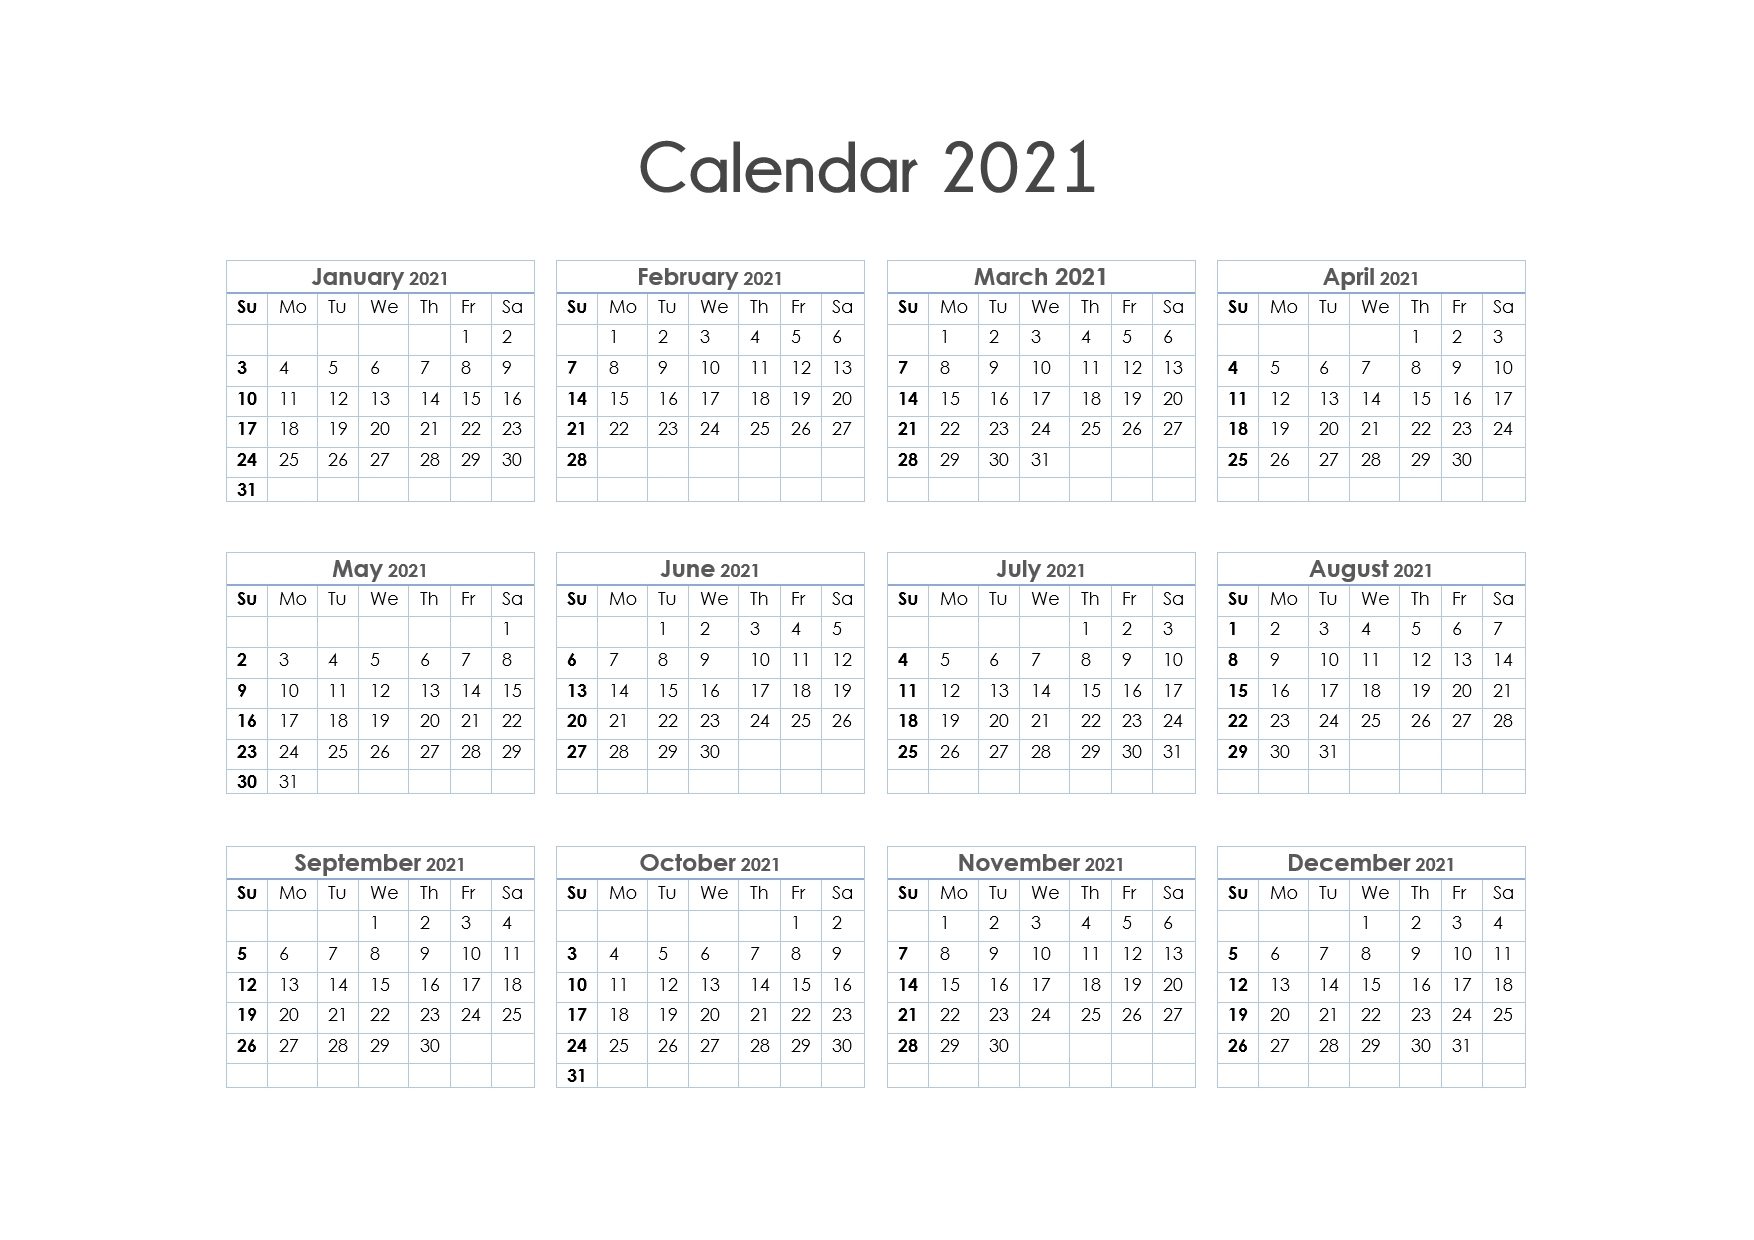 56+ Printable Calendar 2021 One Page, Us 2021 Calendar-Free Printable Calendar 2021 Without Download